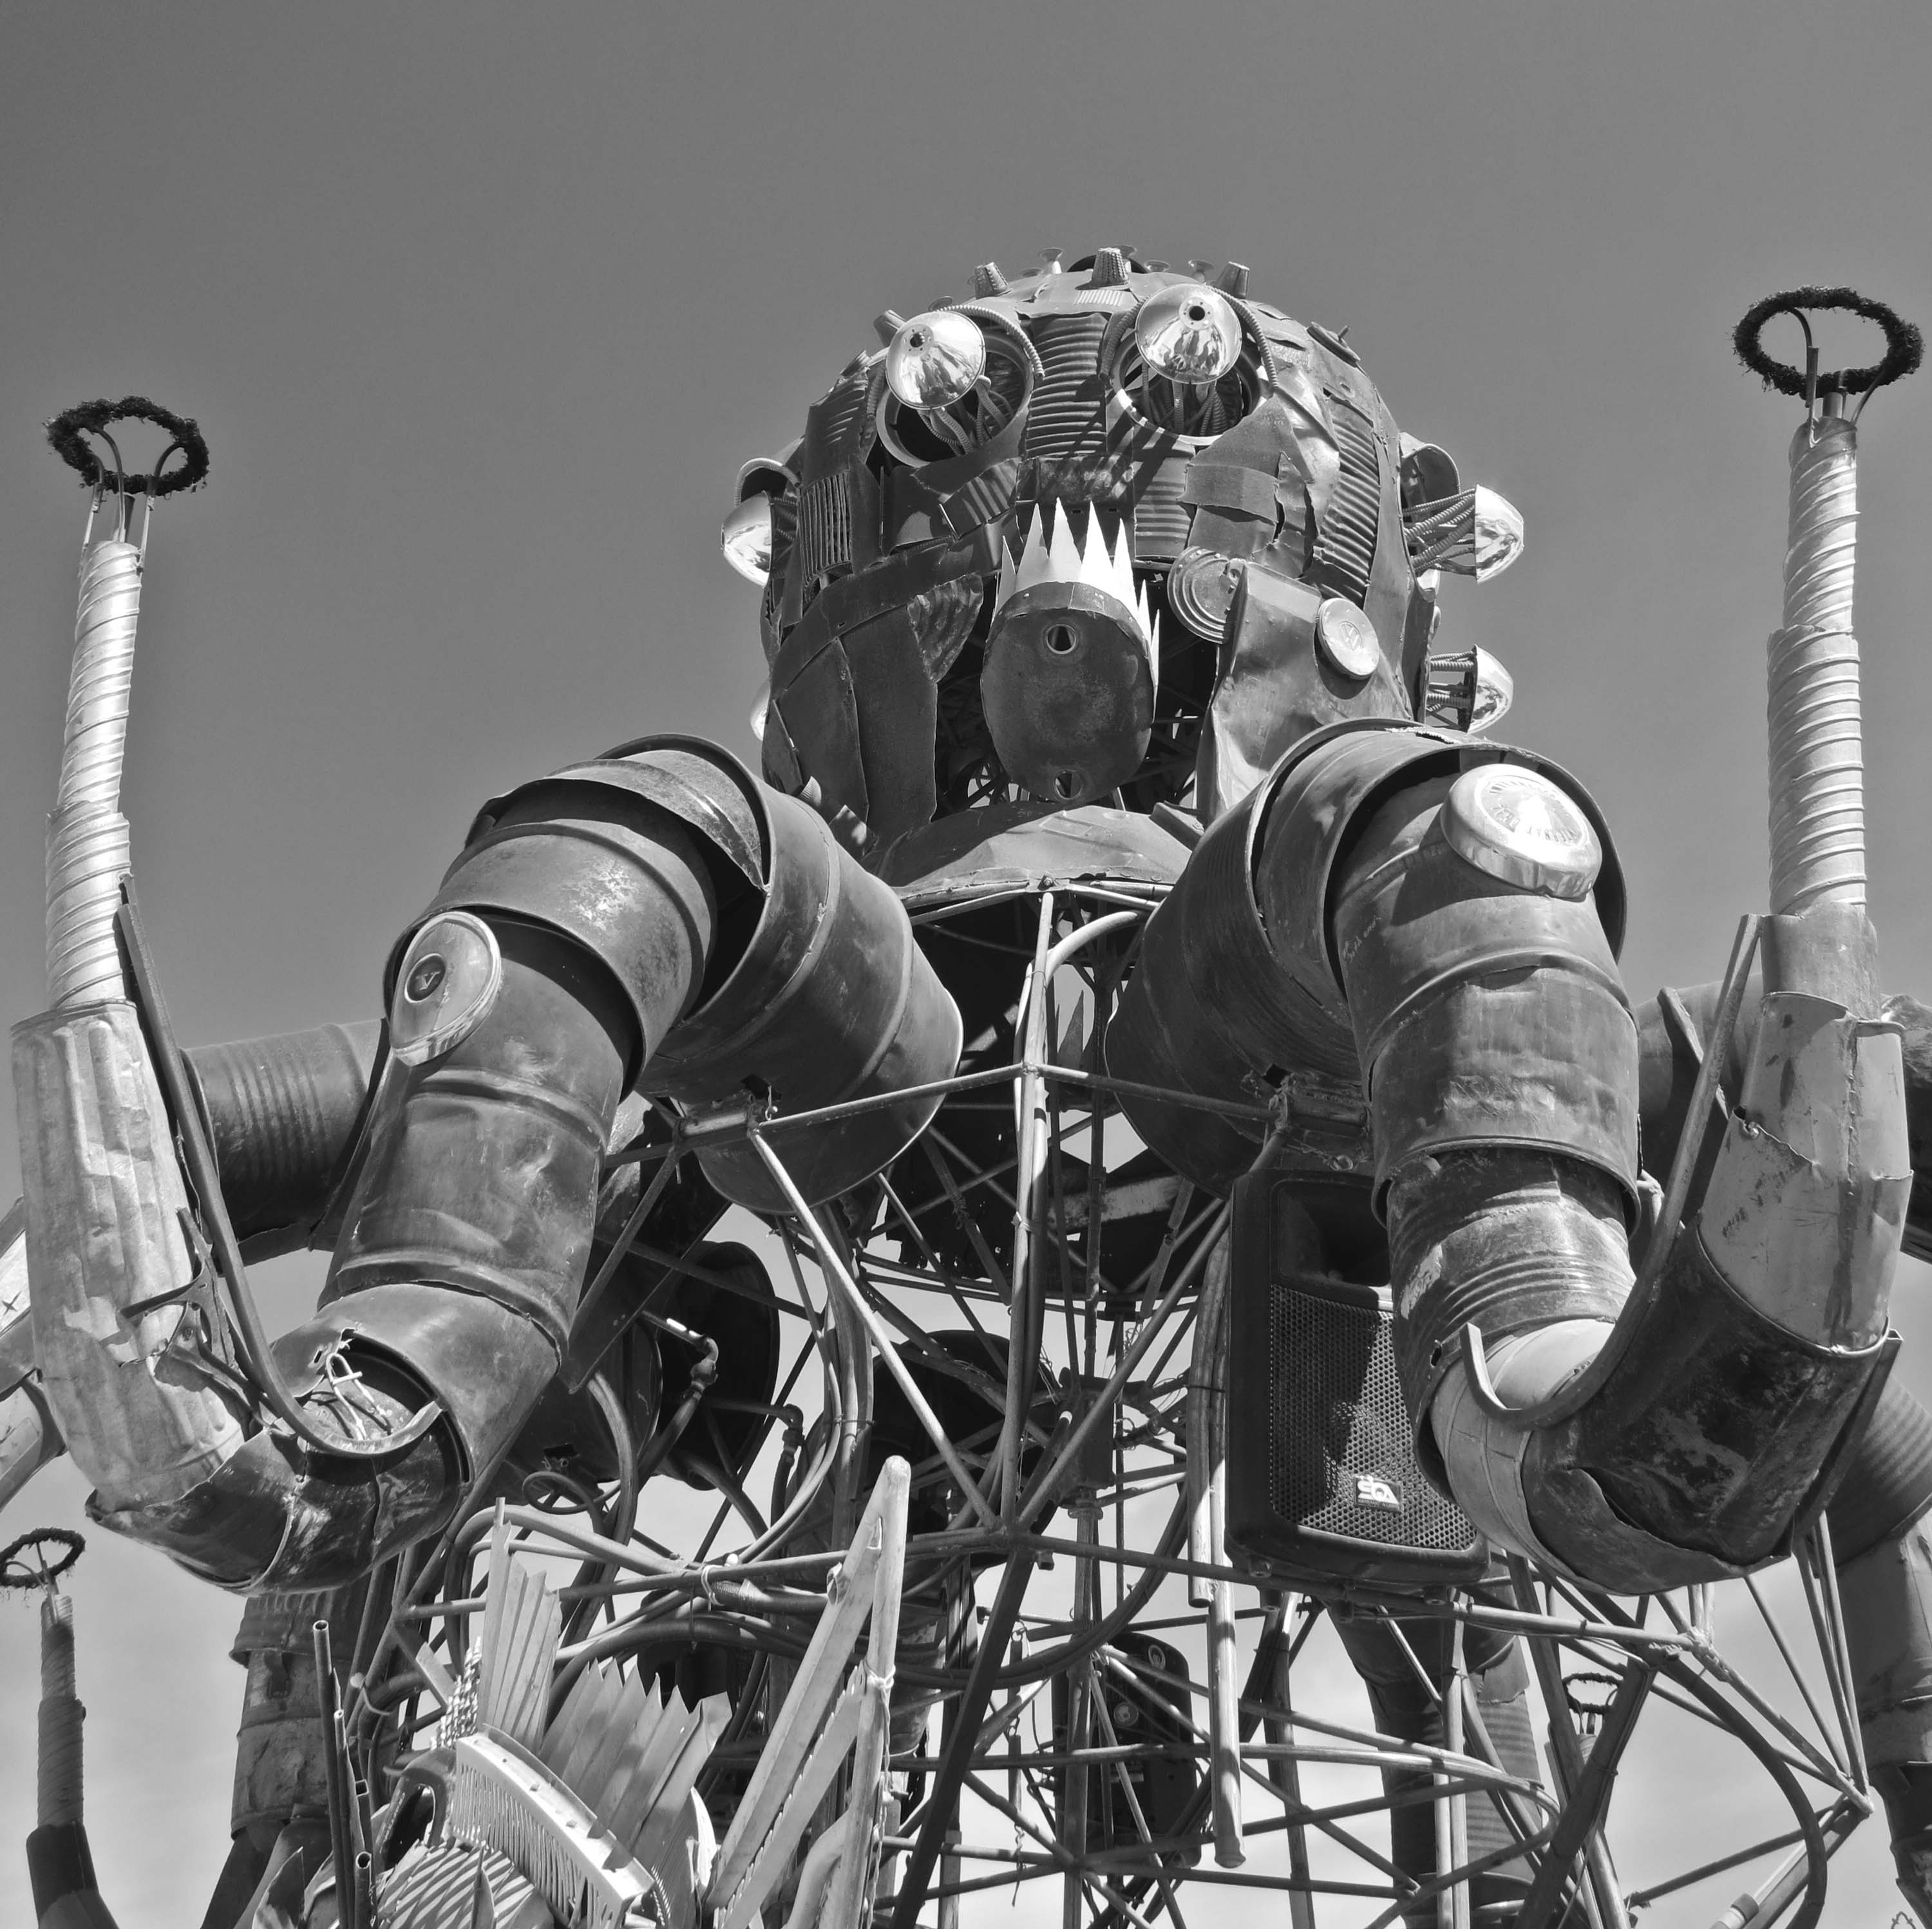 El Pulpo Mechanico became an instant Burning Man classic when it first made its appearance on the Playa a few years ago. At night, its arms pump up and down shooting out fire.